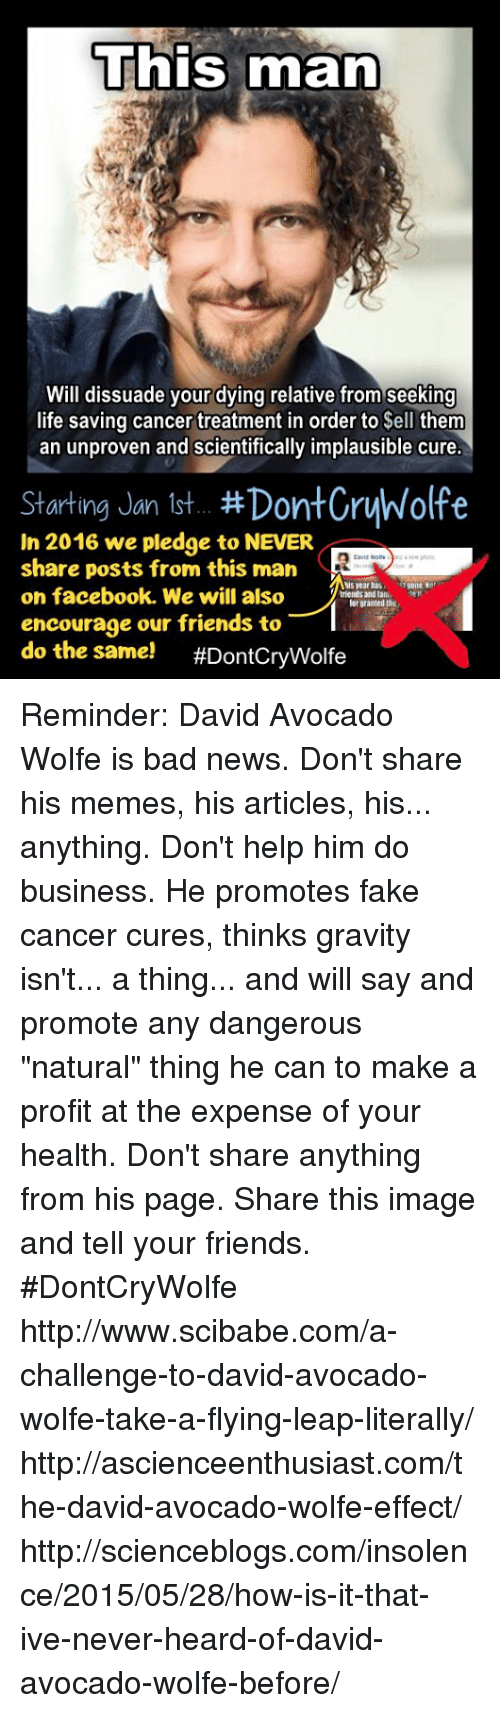 """insolent: This man  Will dissuade your dying relative from seeking  life saving cancer treatment in order to $ell them  an unproven and scientifically implausible cure.  Starting Jan 1st  #DontCryWolfe  In 2016 we pledge to NEVER  share posts from this man  on facebook. We will also  Iriends and Ian,  granted the  encourage our friends to  do the same!  #DontCry Wolfe Reminder: David Avocado Wolfe is bad news. Don't share his memes, his articles, his... anything. Don't help him do business.  He promotes fake cancer cures, thinks gravity isn't... a thing... and will say and promote any dangerous """"natural"""" thing he can to make a profit at the expense of your health.   Don't share anything from his page. Share this image and tell your friends. #DontCryWolfe  http://www.scibabe.com/a-challenge-to-david-avocado-wolfe-take-a-flying-leap-literally/  http://ascienceenthusiast.com/the-david-avocado-wolfe-effect/  http://scienceblogs.com/insolence/2015/05/28/how-is-it-that-ive-never-heard-of-david-avocado-wolfe-before/"""